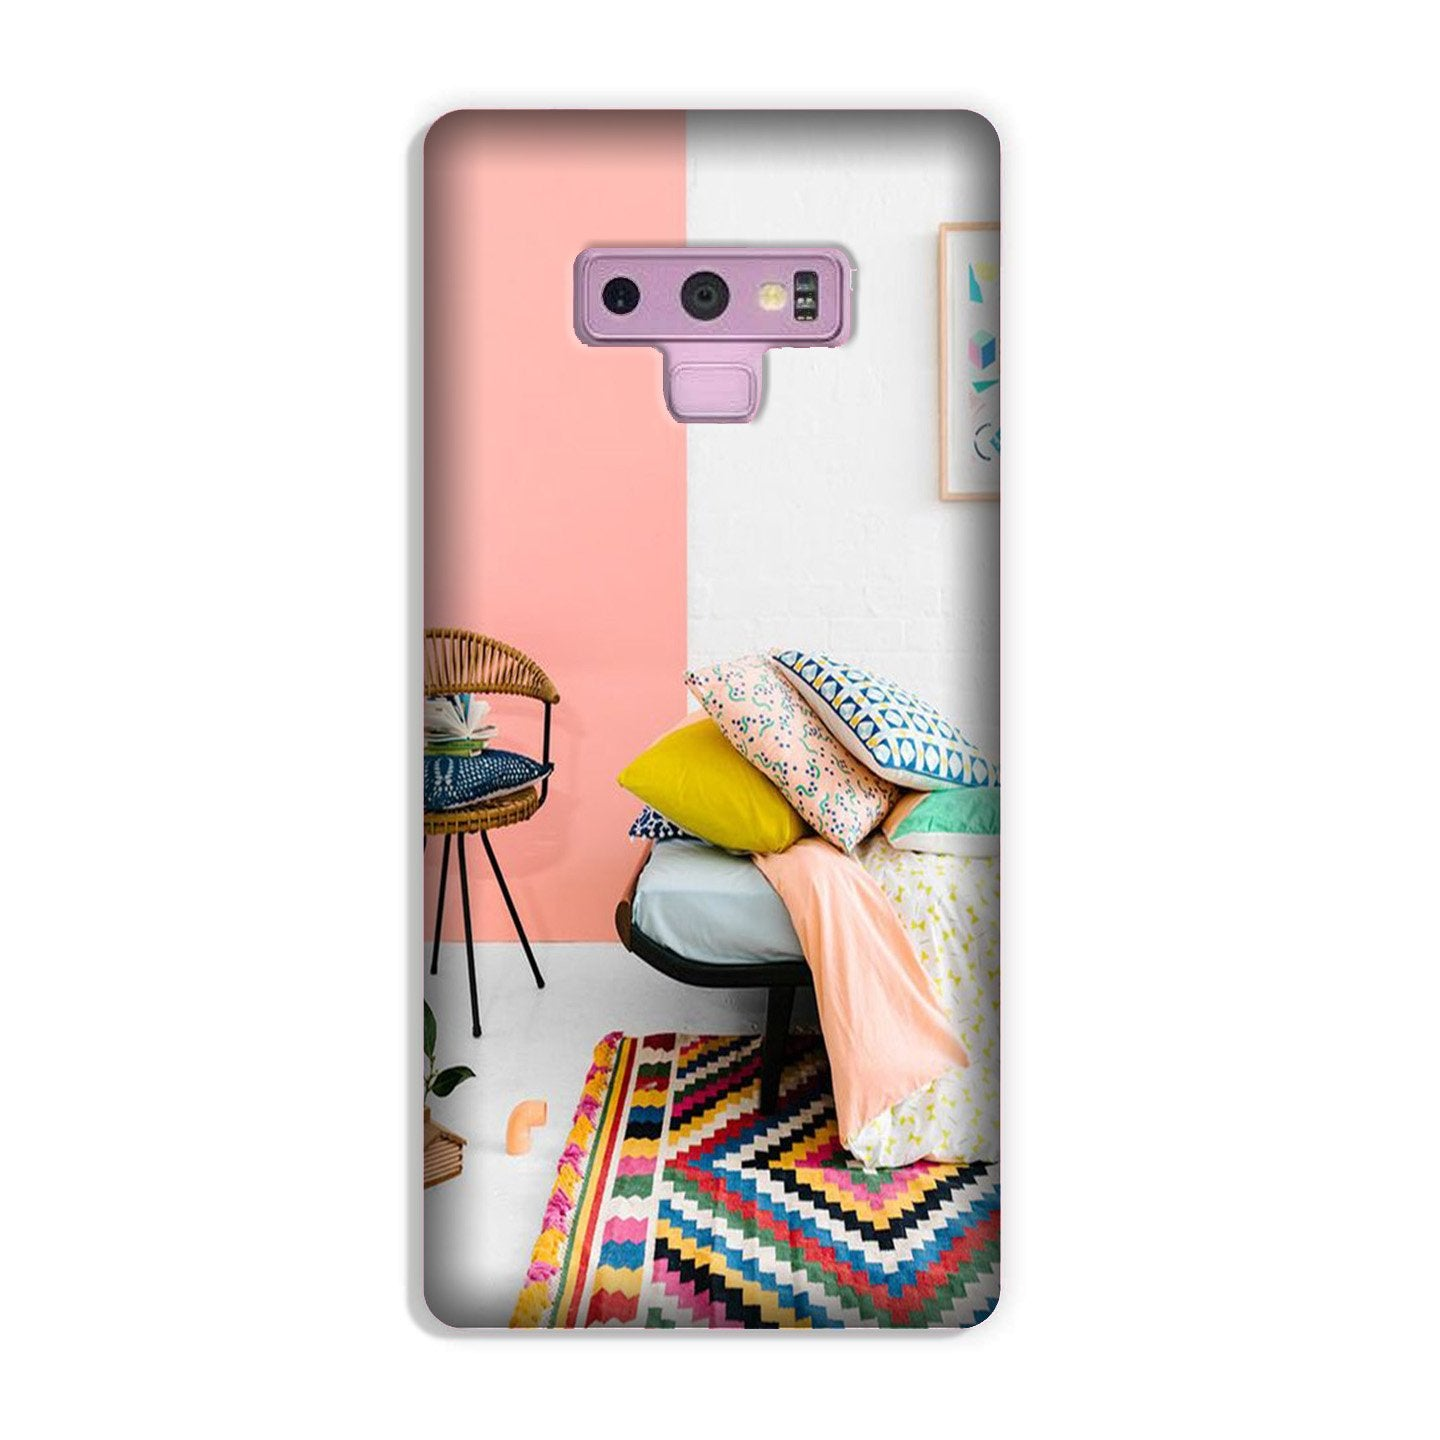 Home Décor Case for Galaxy Note 9